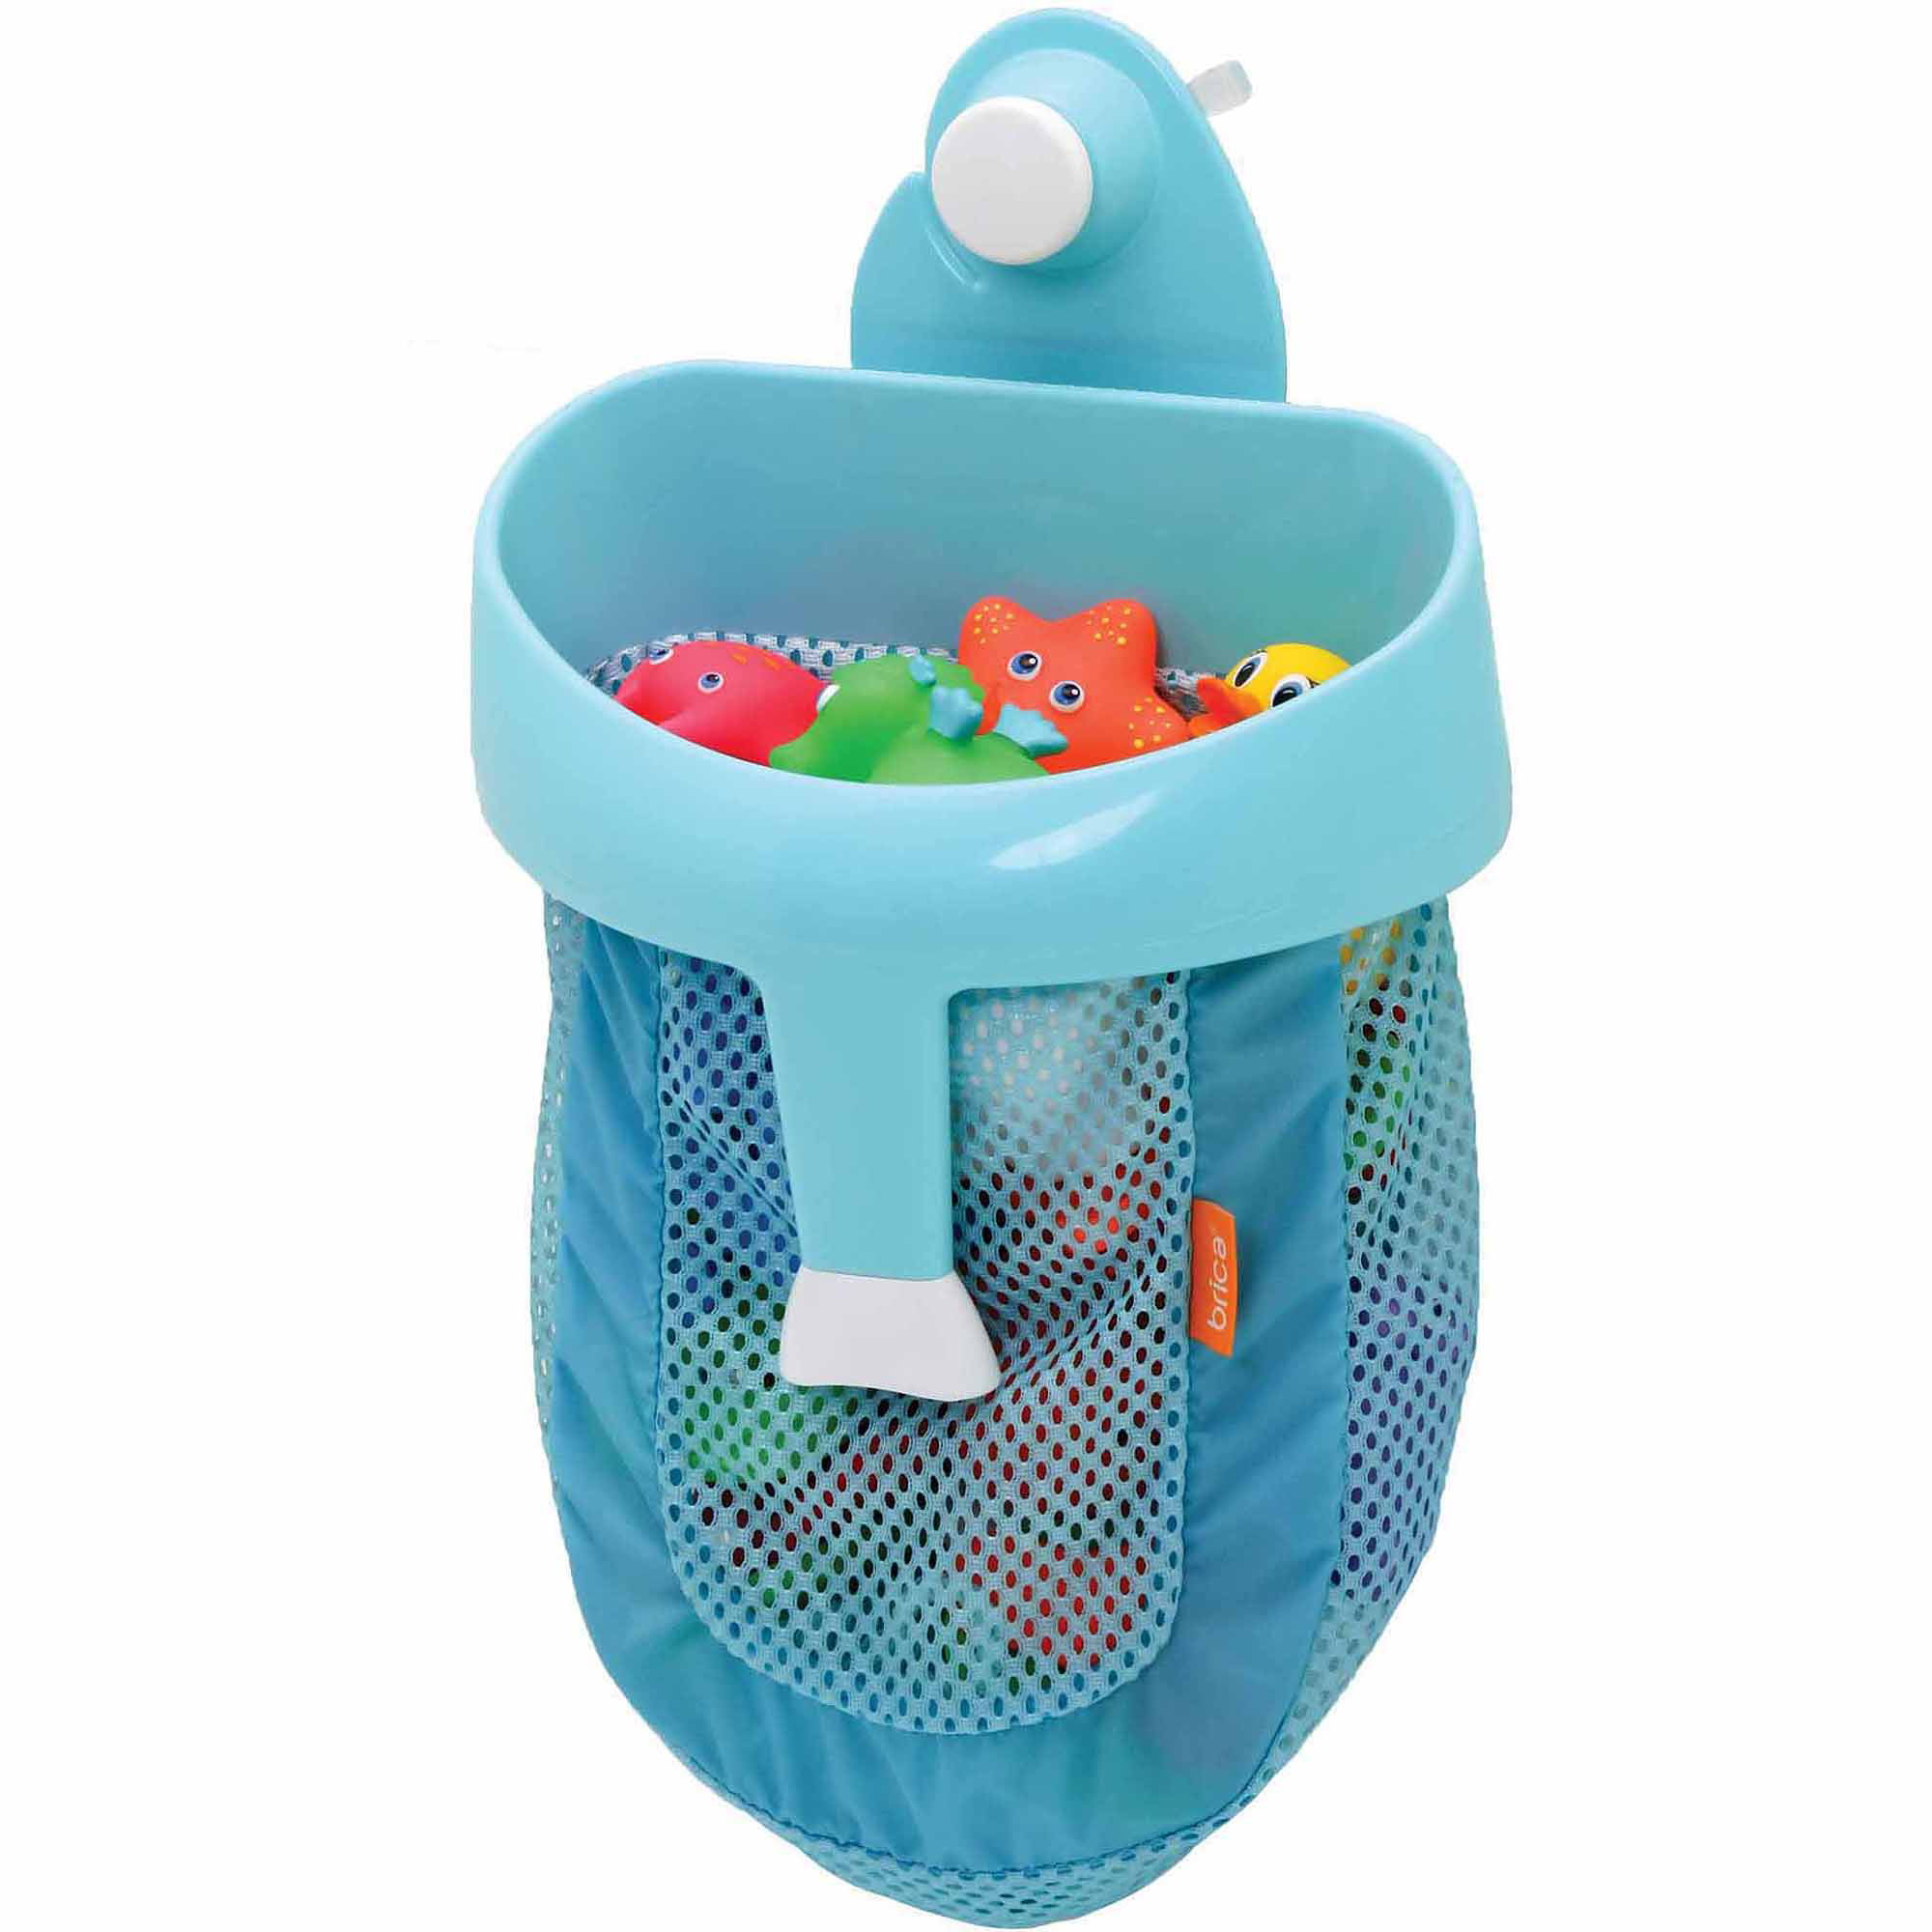 Munchkin Super Scoop Bath Toy Organizer Walmart